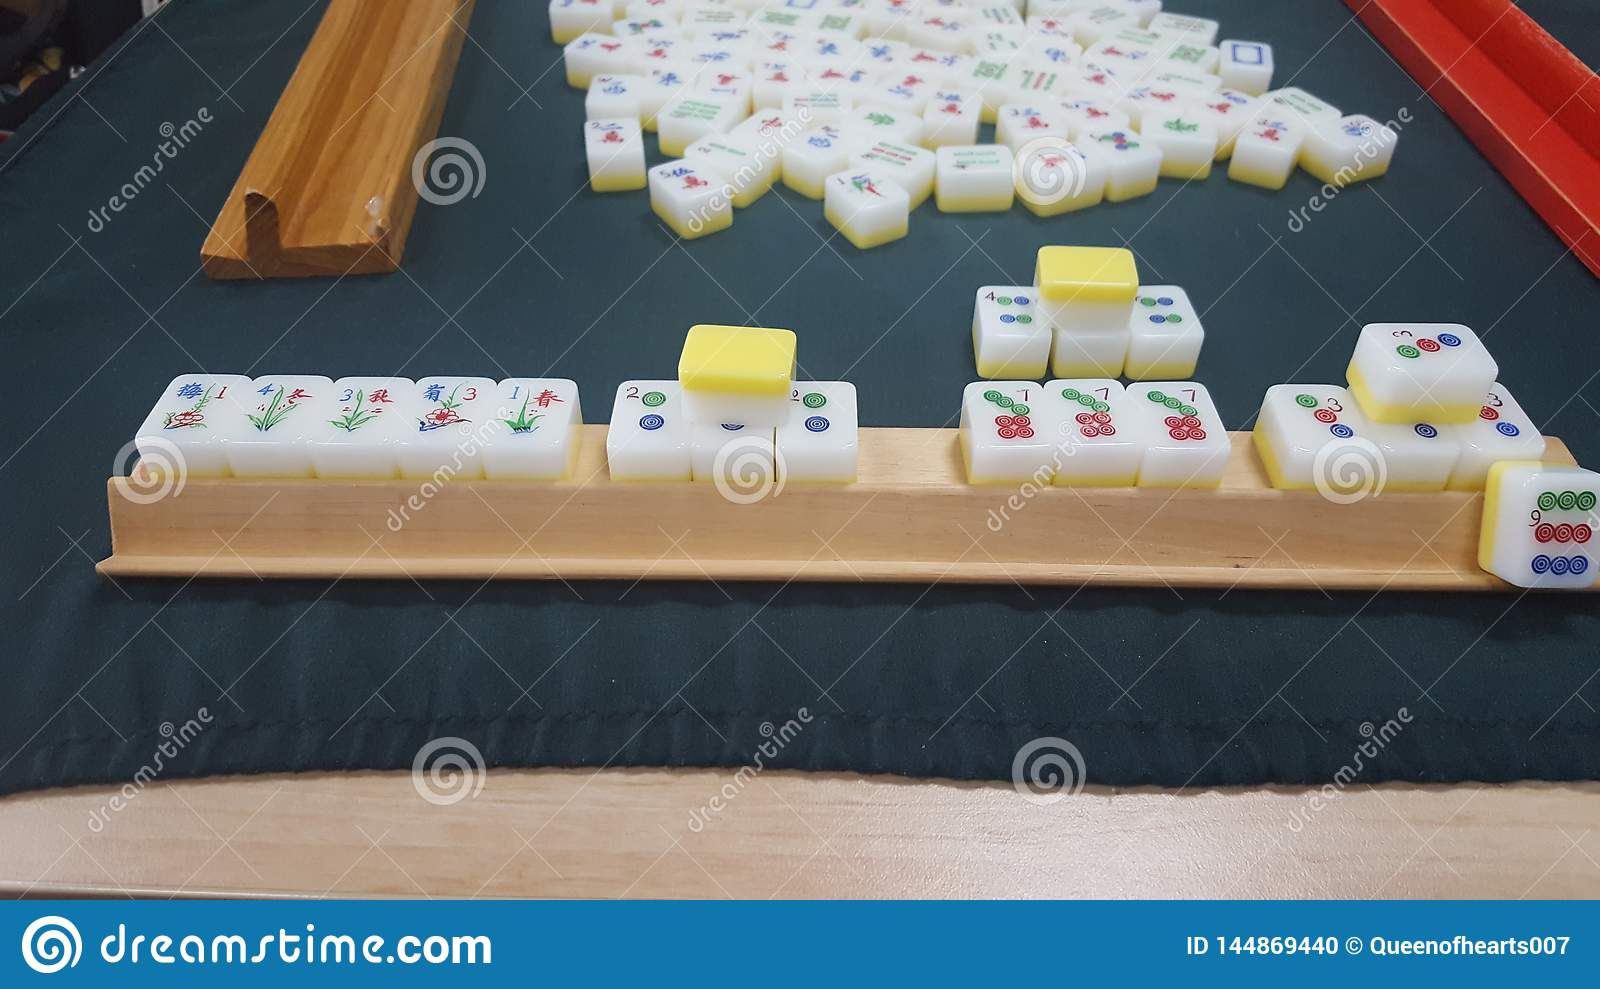 https www dreamstime com mahjong chinese tile game played players sydney nsw australia mahjong chinese tile game played players sydney nsw australia image144869440